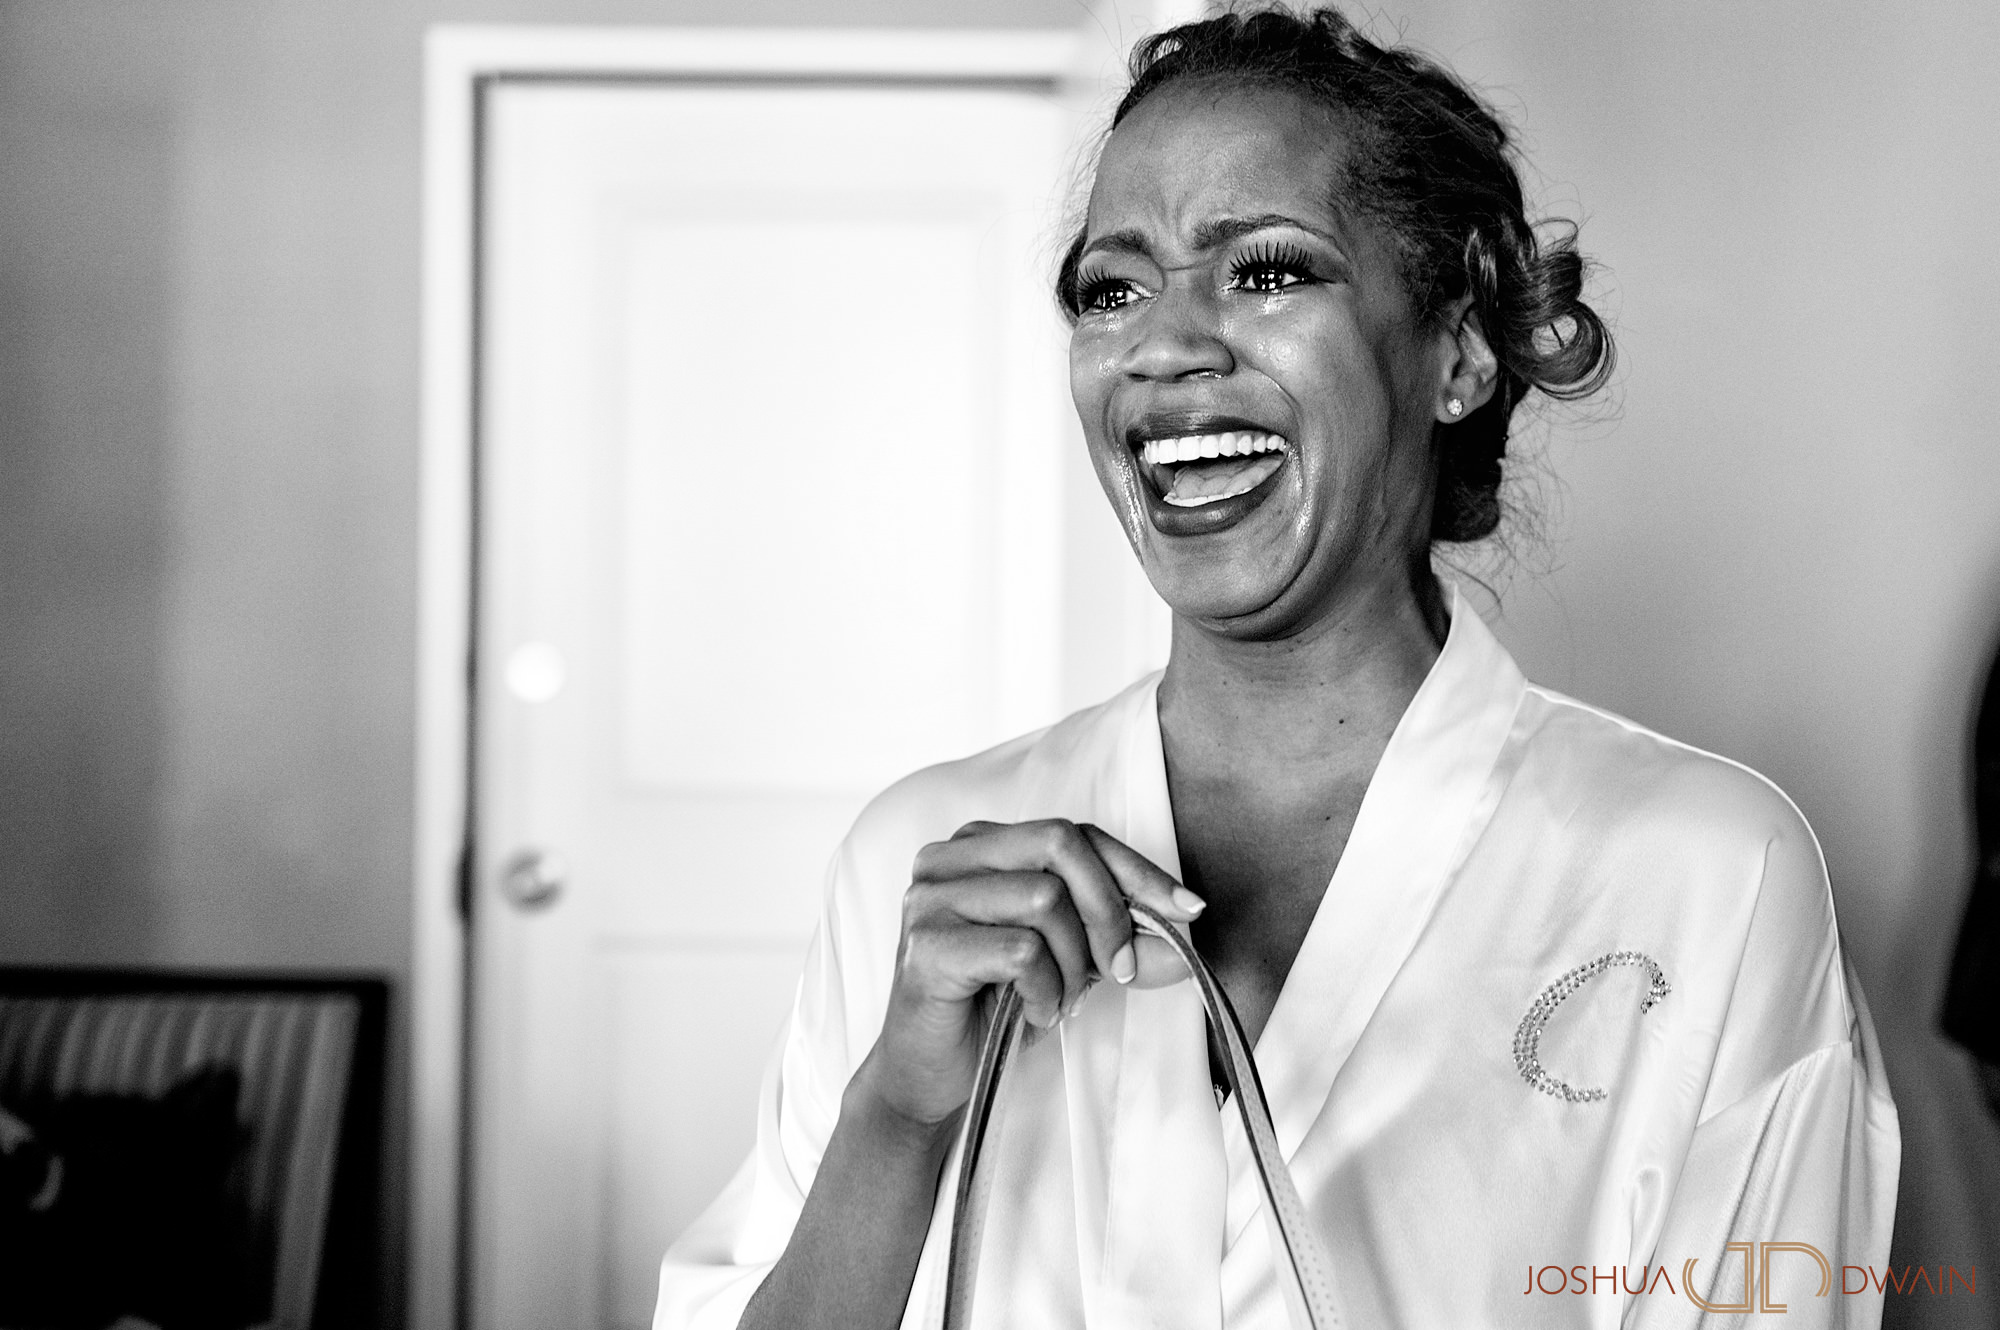 carol-shiloh-004-the-palace-somerset-new-jerseywedding-photographer-joshua-dwain-2011-11-25_cs_104x